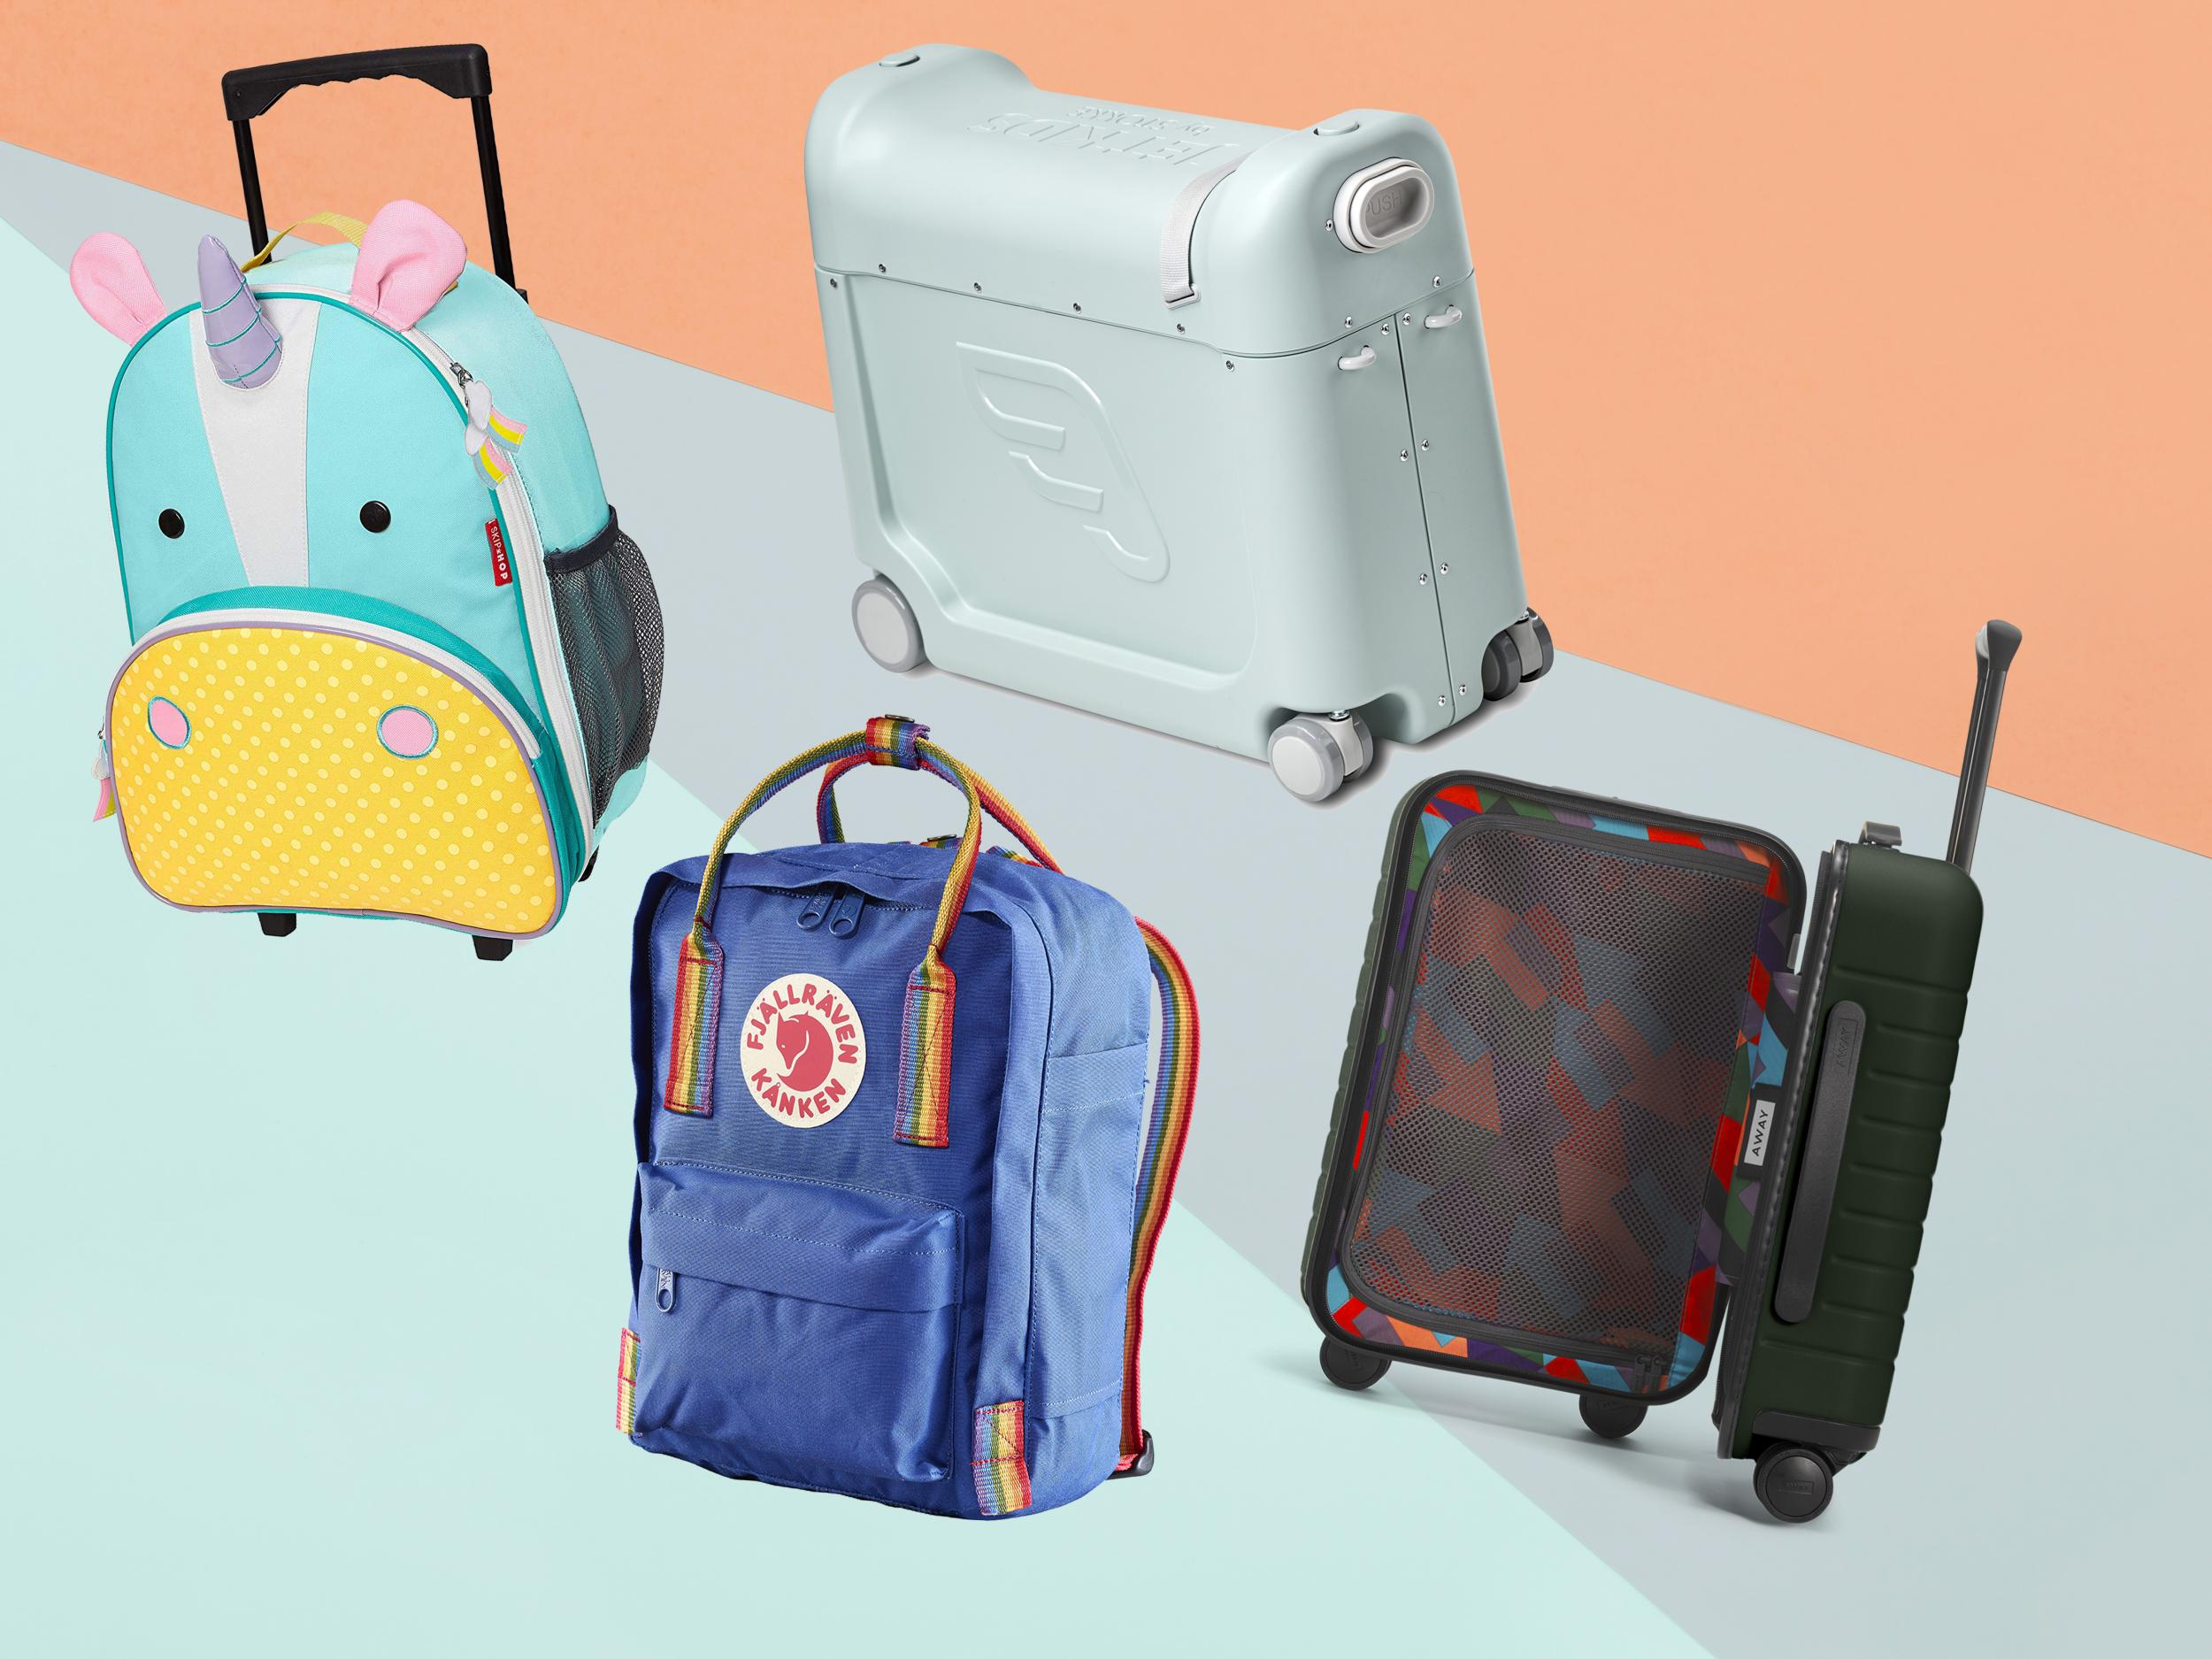 d34dfadd60d3 Best children's luggage: Suitcases, backpacks and carry-ons that are ...